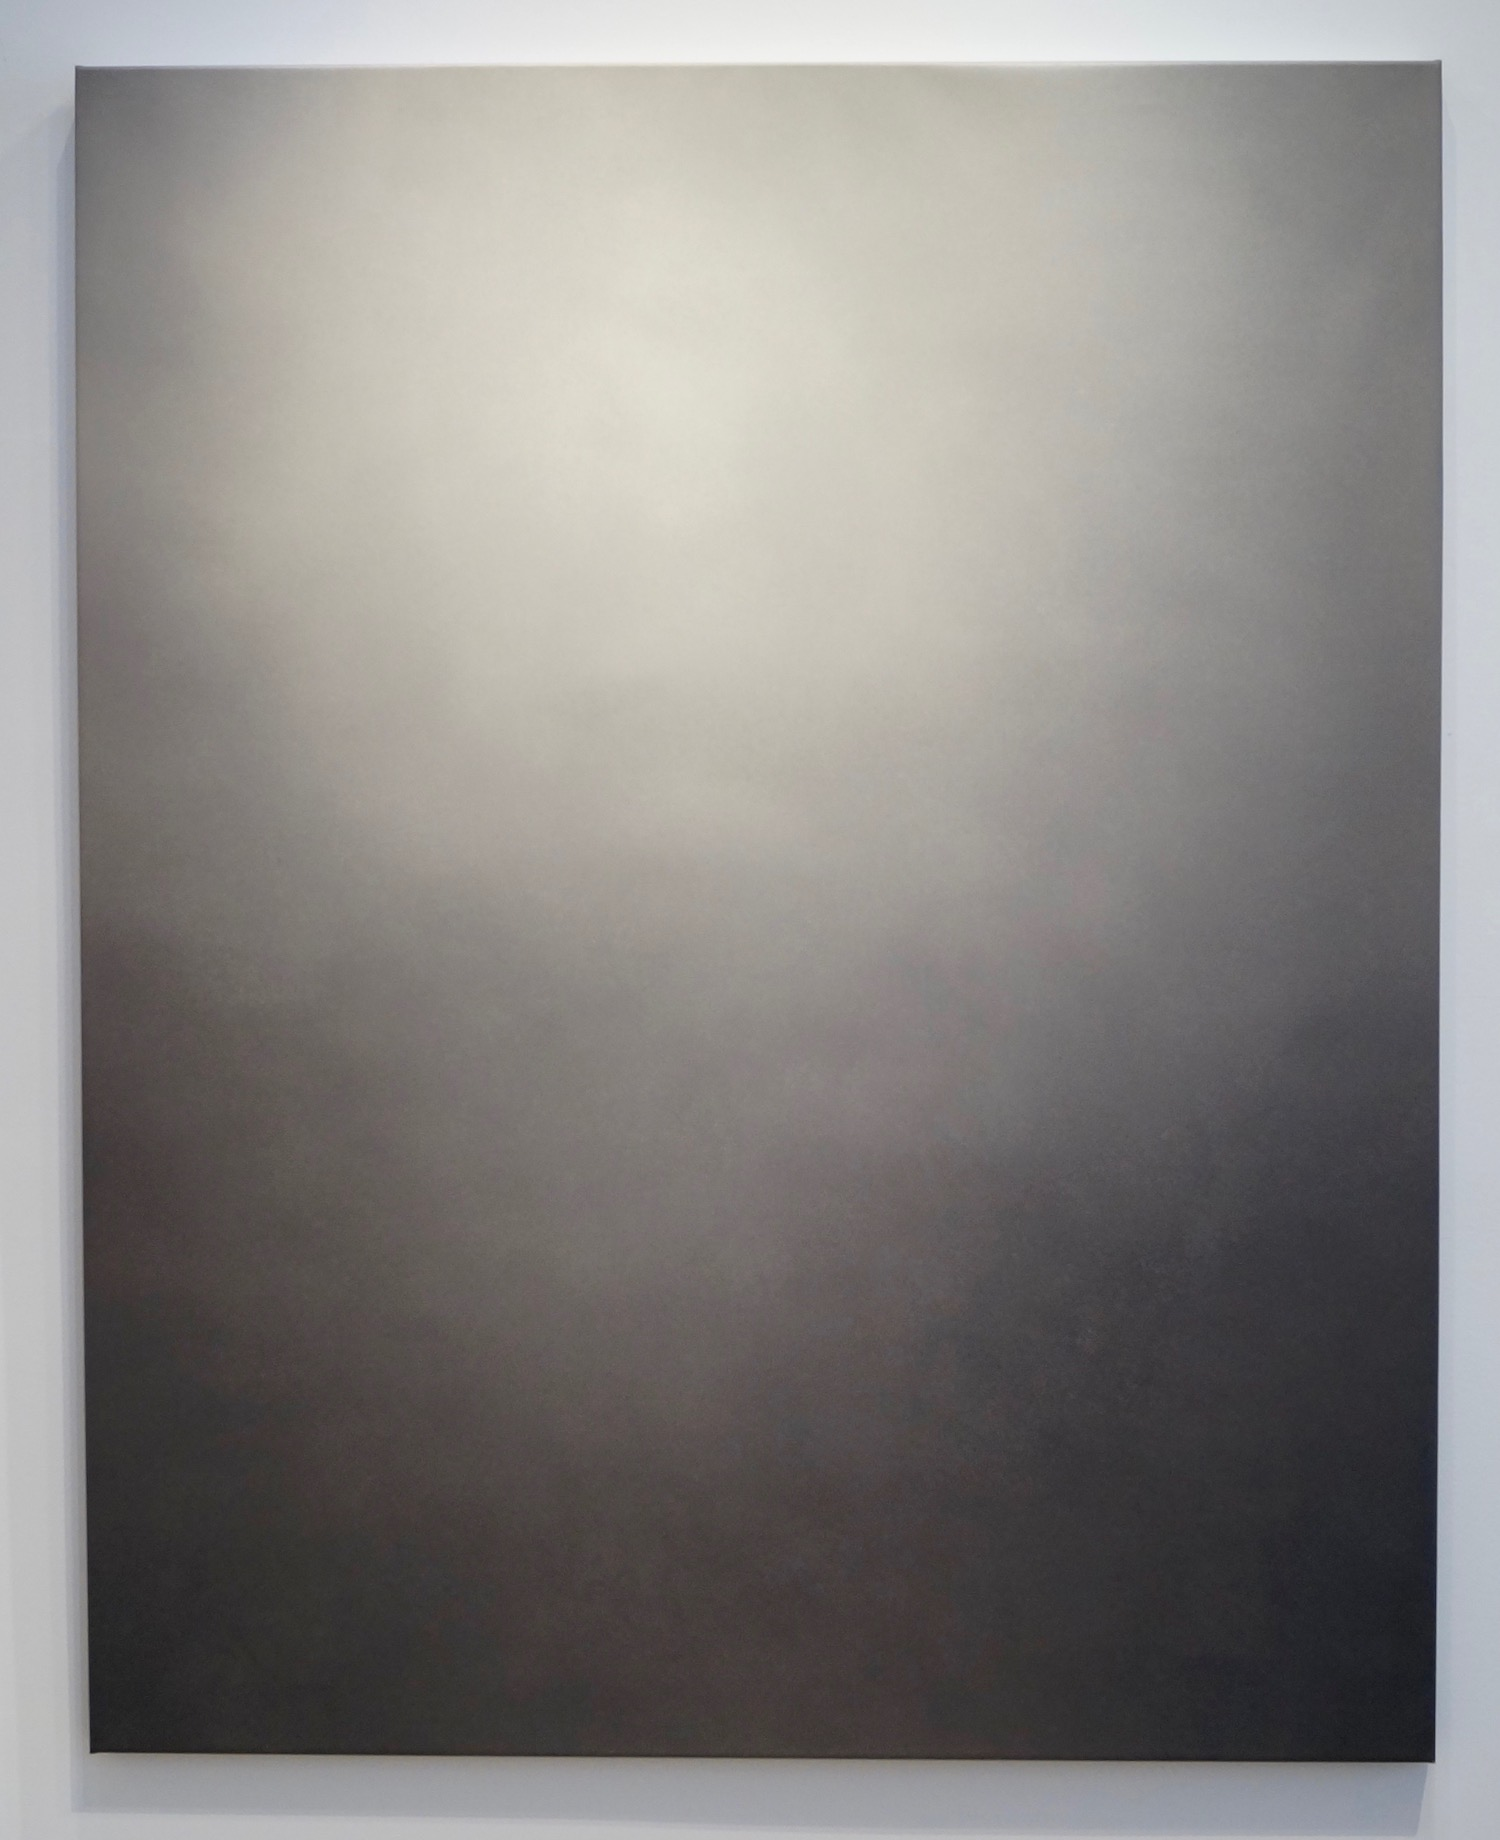 Magnus Thorén untitled, 2016 oil on canvas 175 x 140 cm | 69 x 55 in MTH/M 56